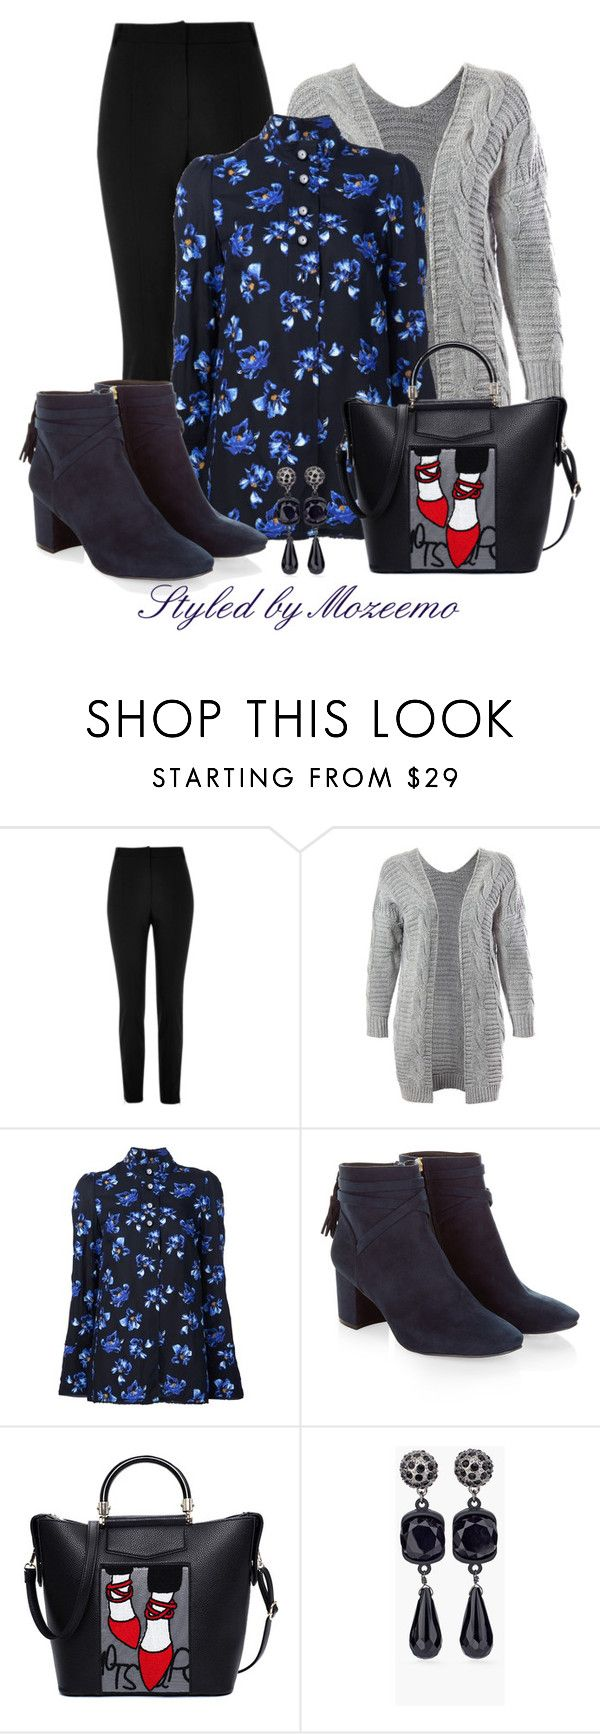 """""""Window Shopping Outfit"""" by mozeemo ❤ liked on Polyvore featuring River Island, Sans Souci, Proenza Schouler, Monsoon and Chico's"""